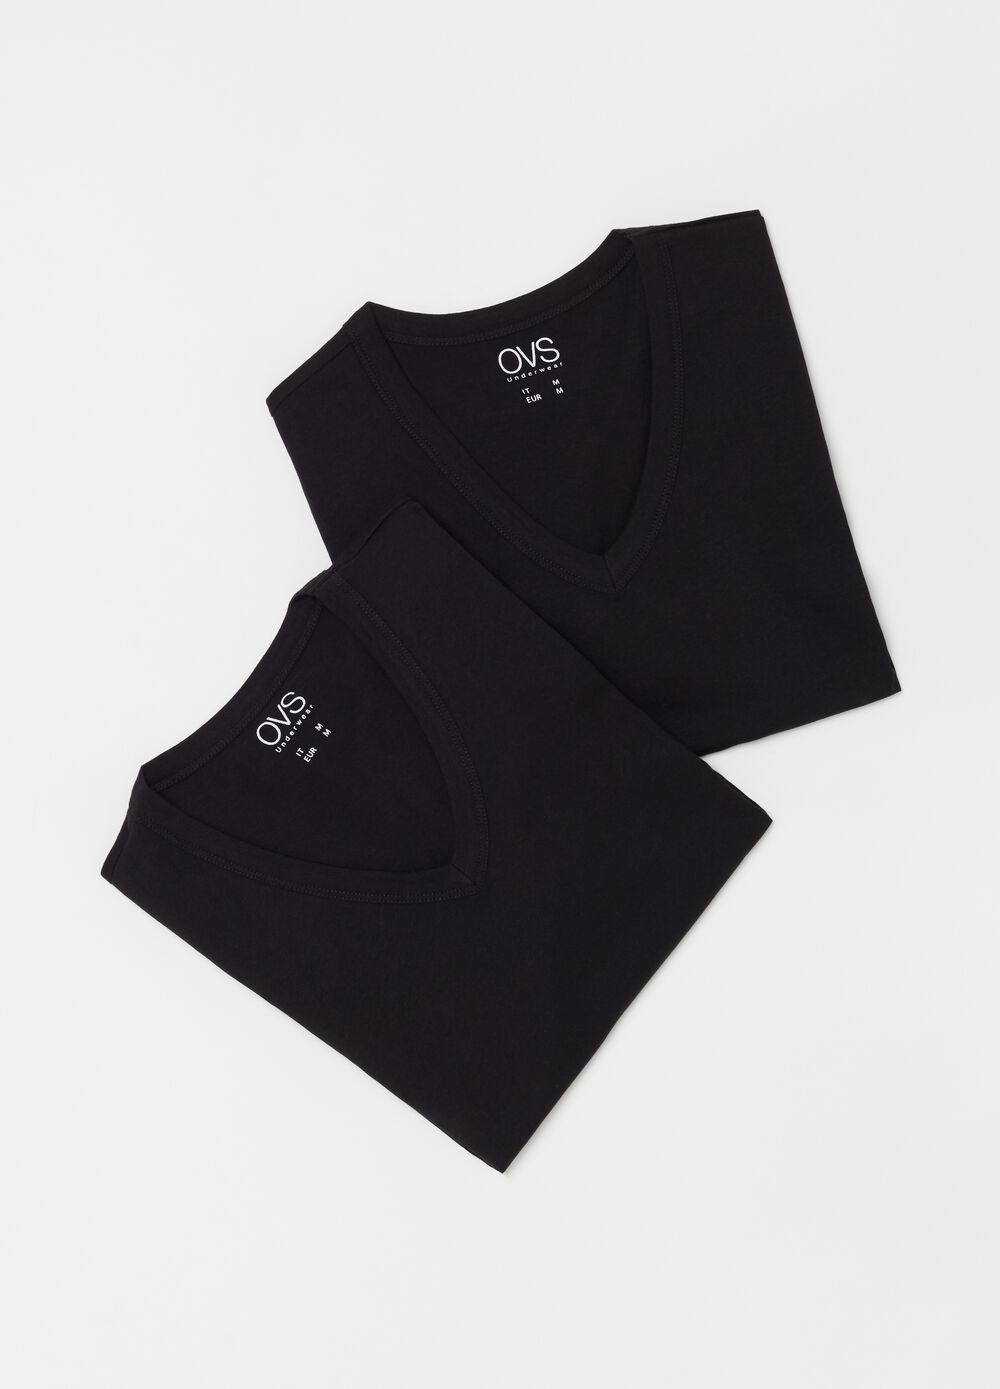 Two-pack undershirts with V neck